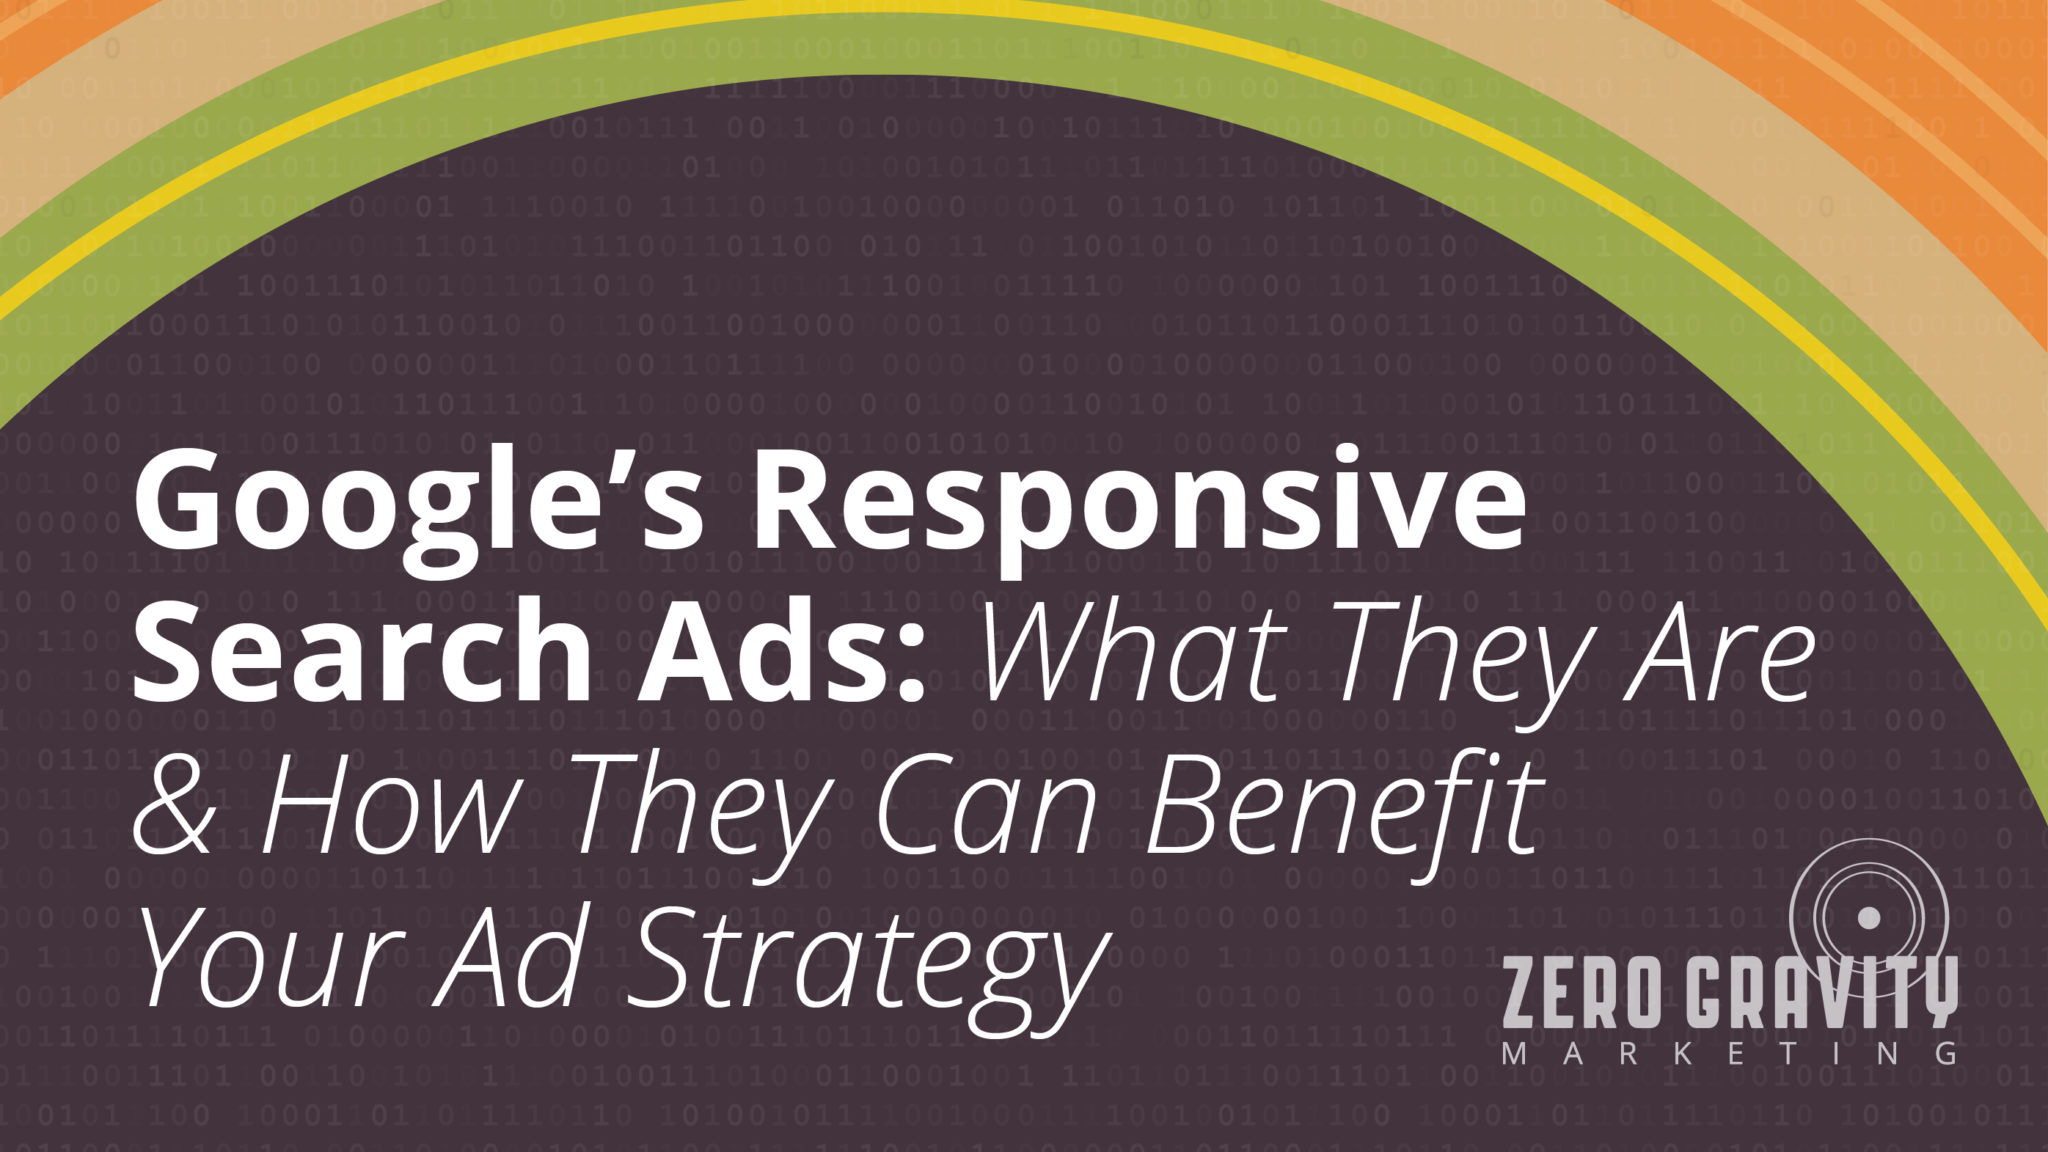 What Are Google's Responsive Search Ads? | Google Search Ads